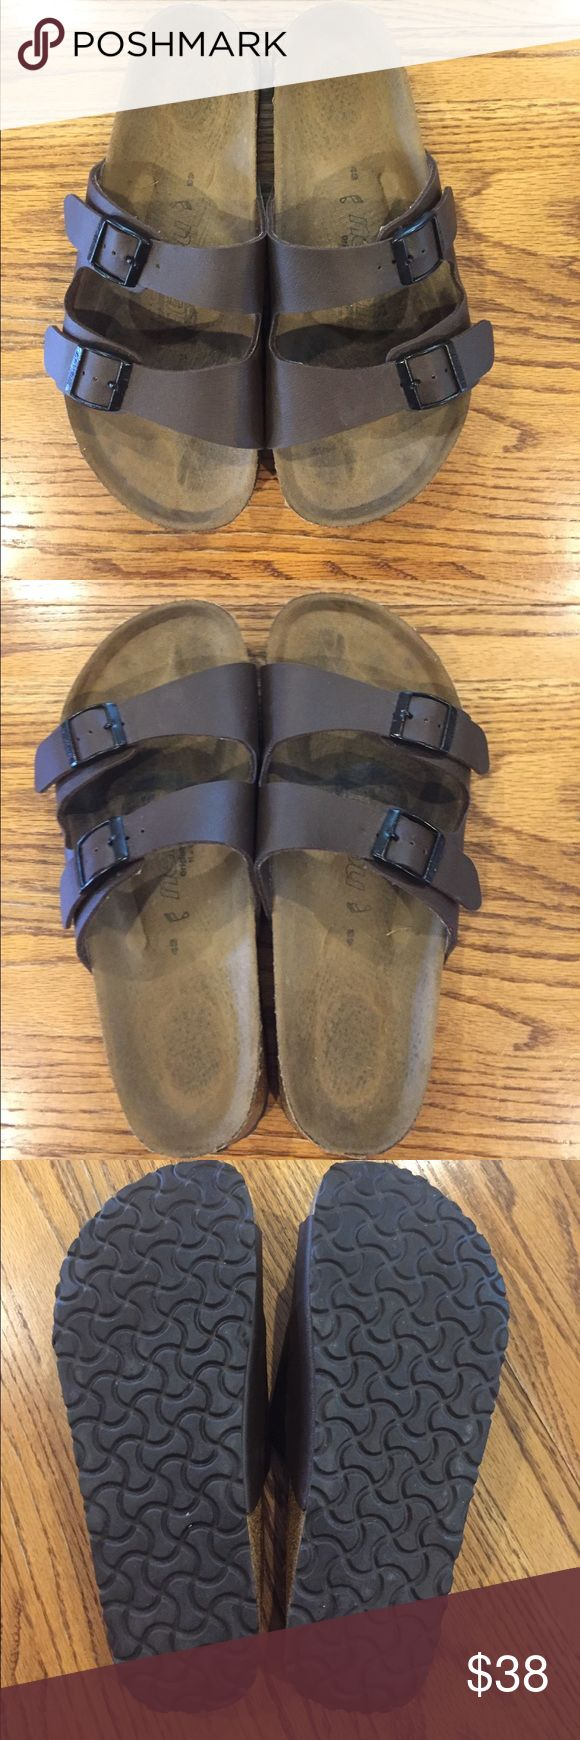 Birkenstock (Newalk) sandals Birkenstock Newalk dark brown leather sandals. Size 43. I bought these for my husband and he didn't like them. He did wear around the house with socks to try and get used to them. Thanks for looking. Birkenstock Shoes Sandals